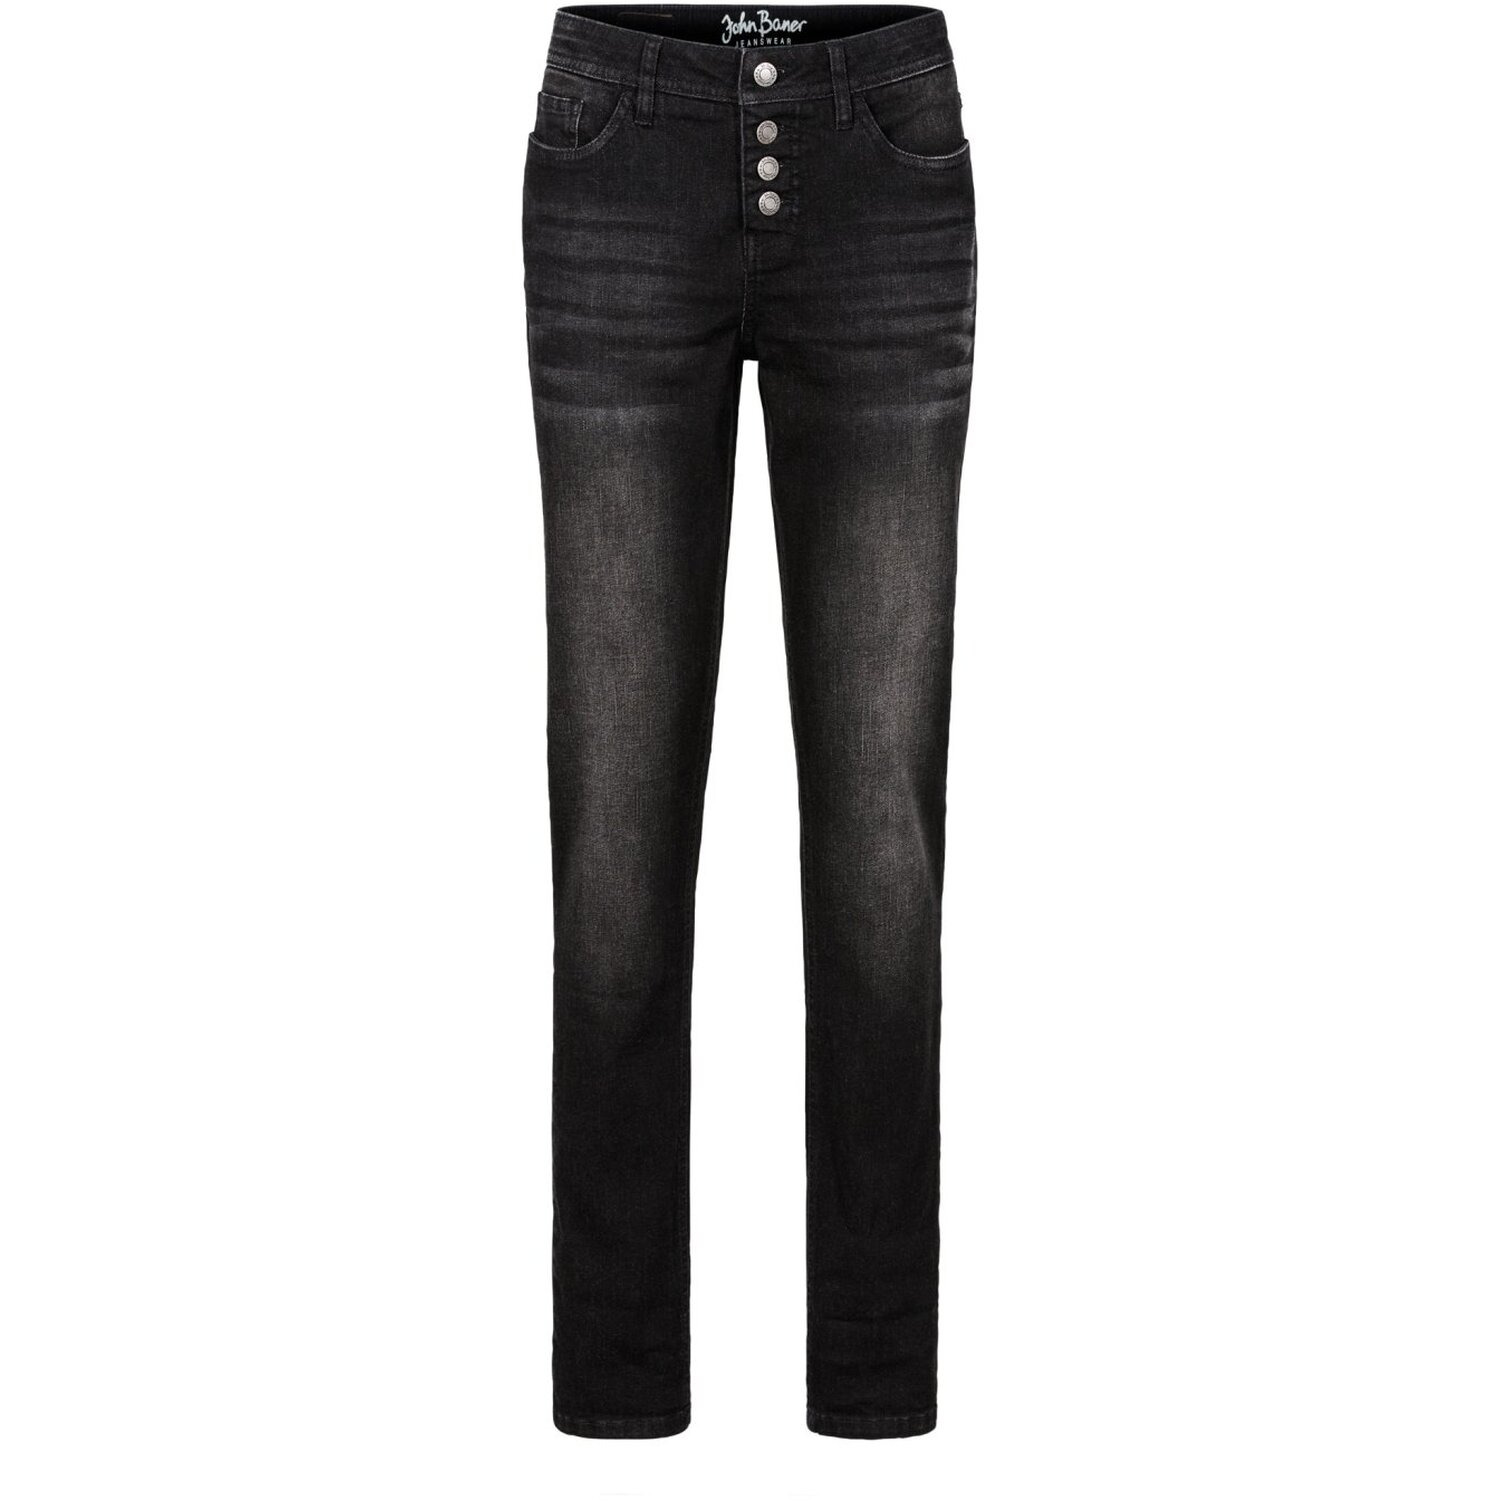 Damen Stretch-Jeans im Boyfriend-Style, in Schwarz